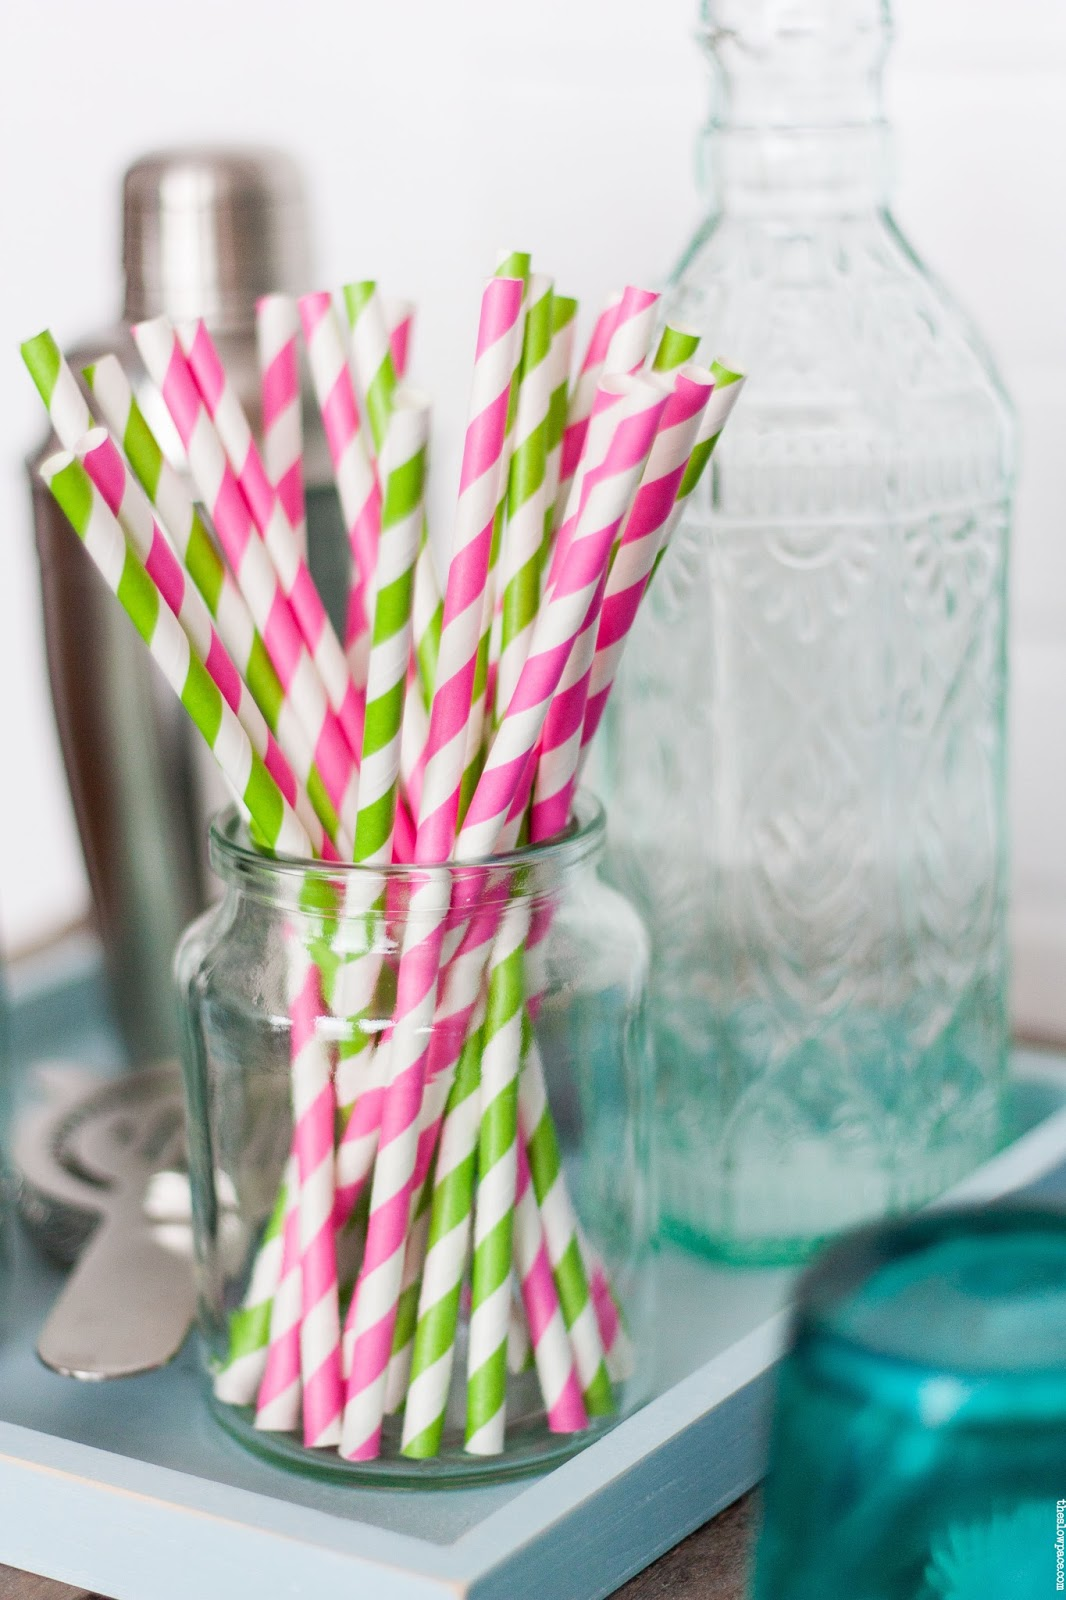 Meg made creations decorating with vases diy home decor 28 things to put in a vase straws for party reviewsmspy